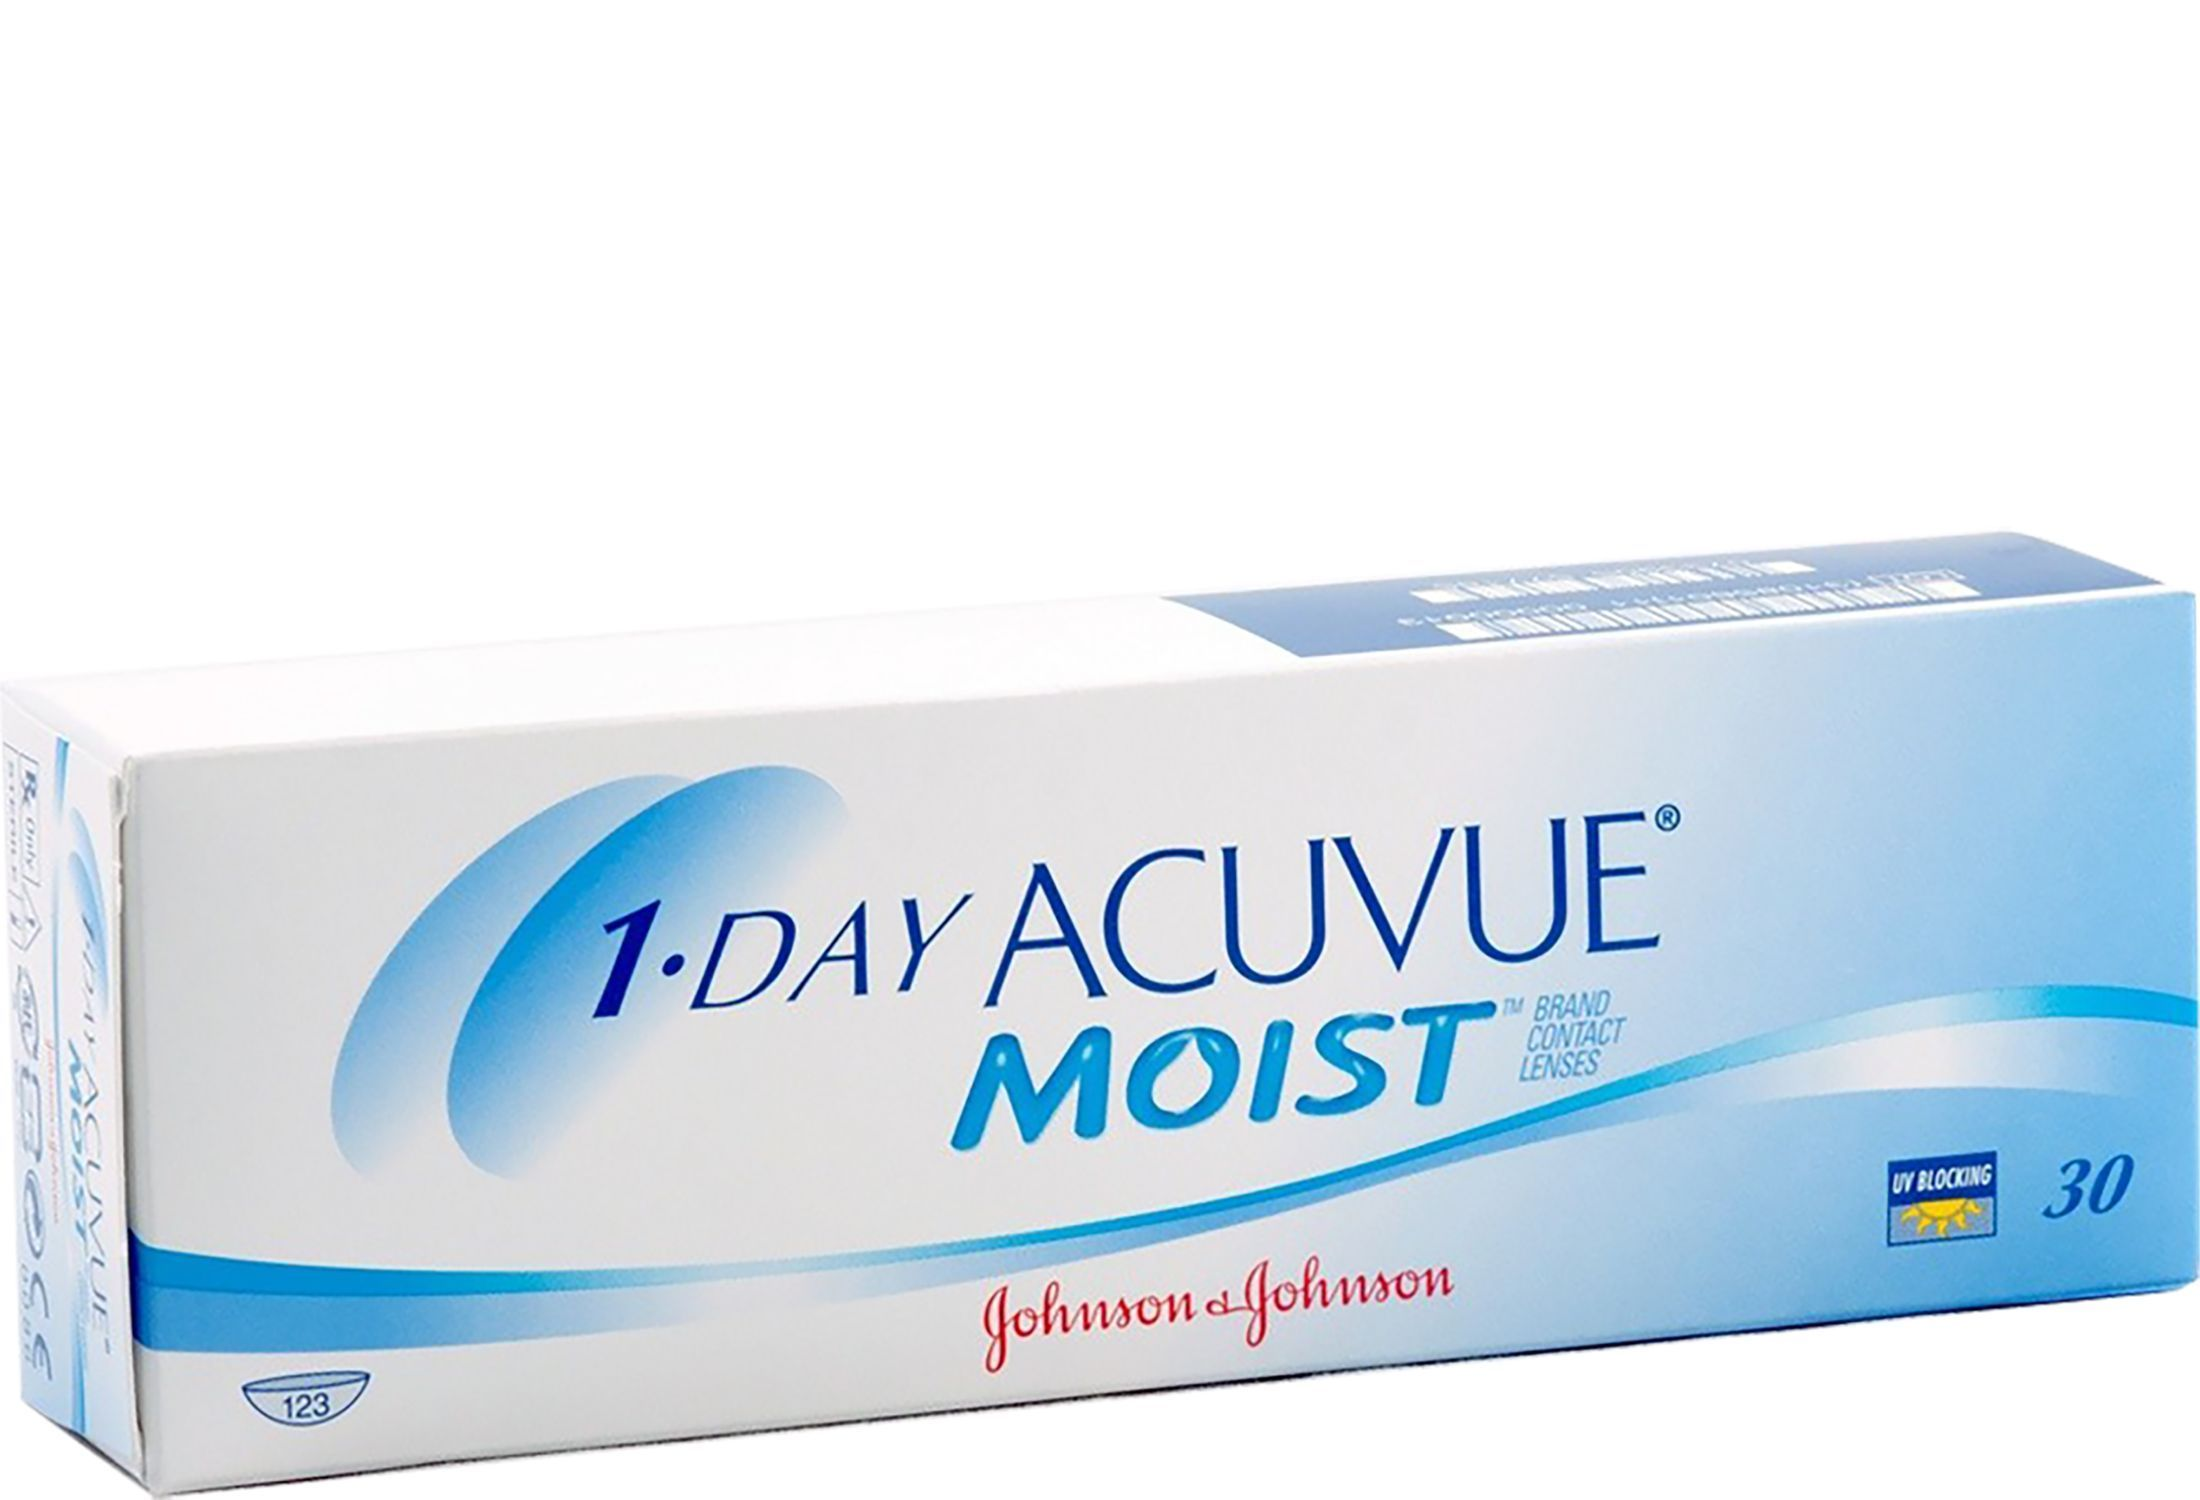 1-DAY ACUVUE MOIST 30 stk